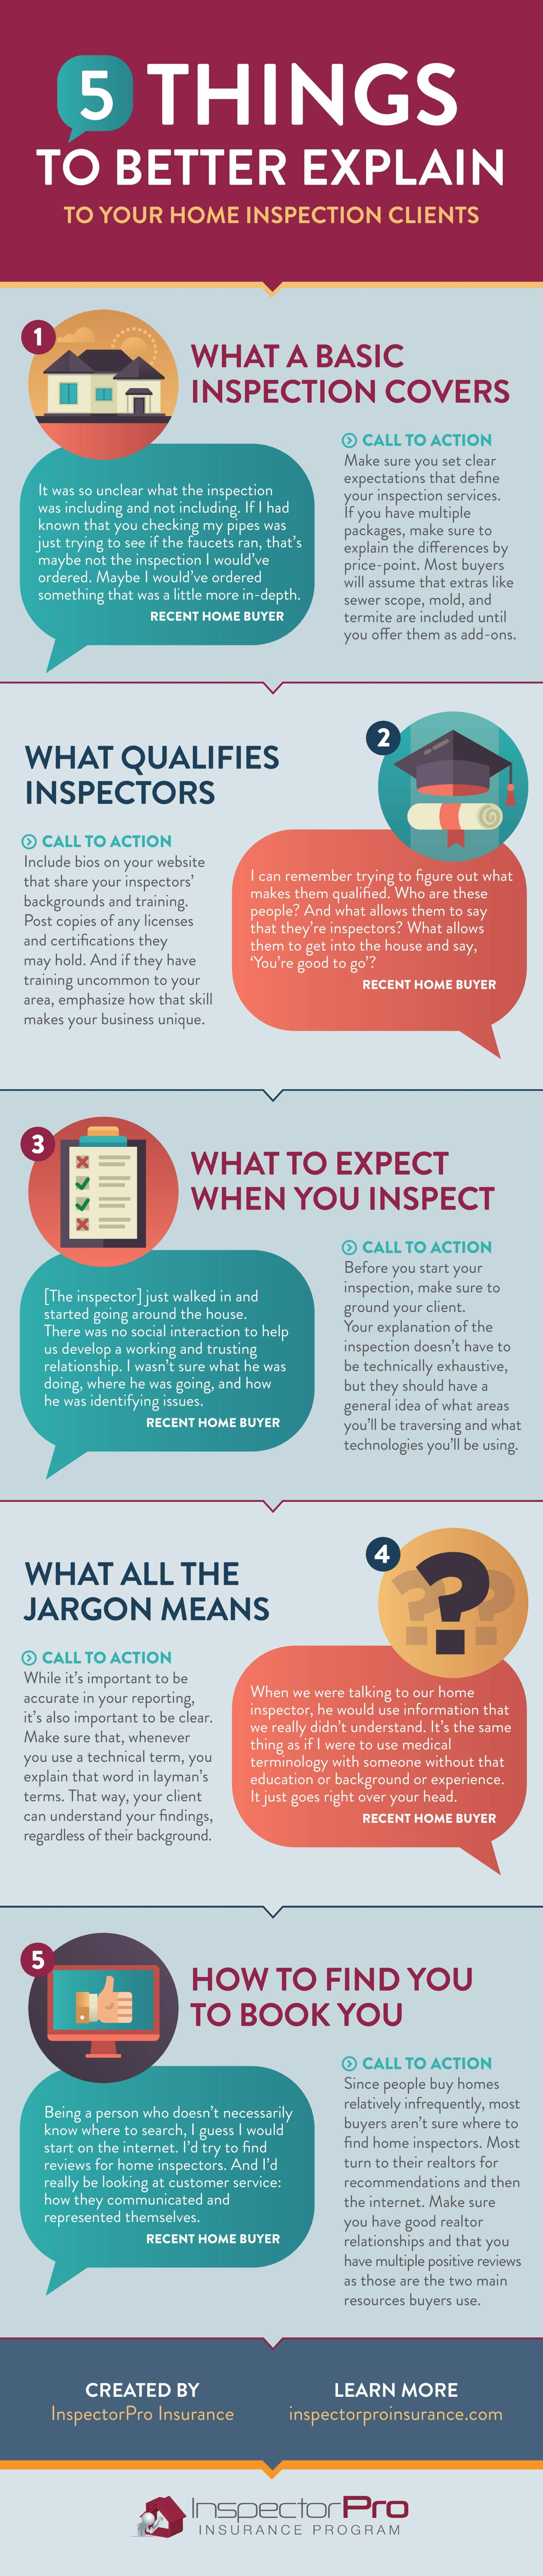 home inspection clients